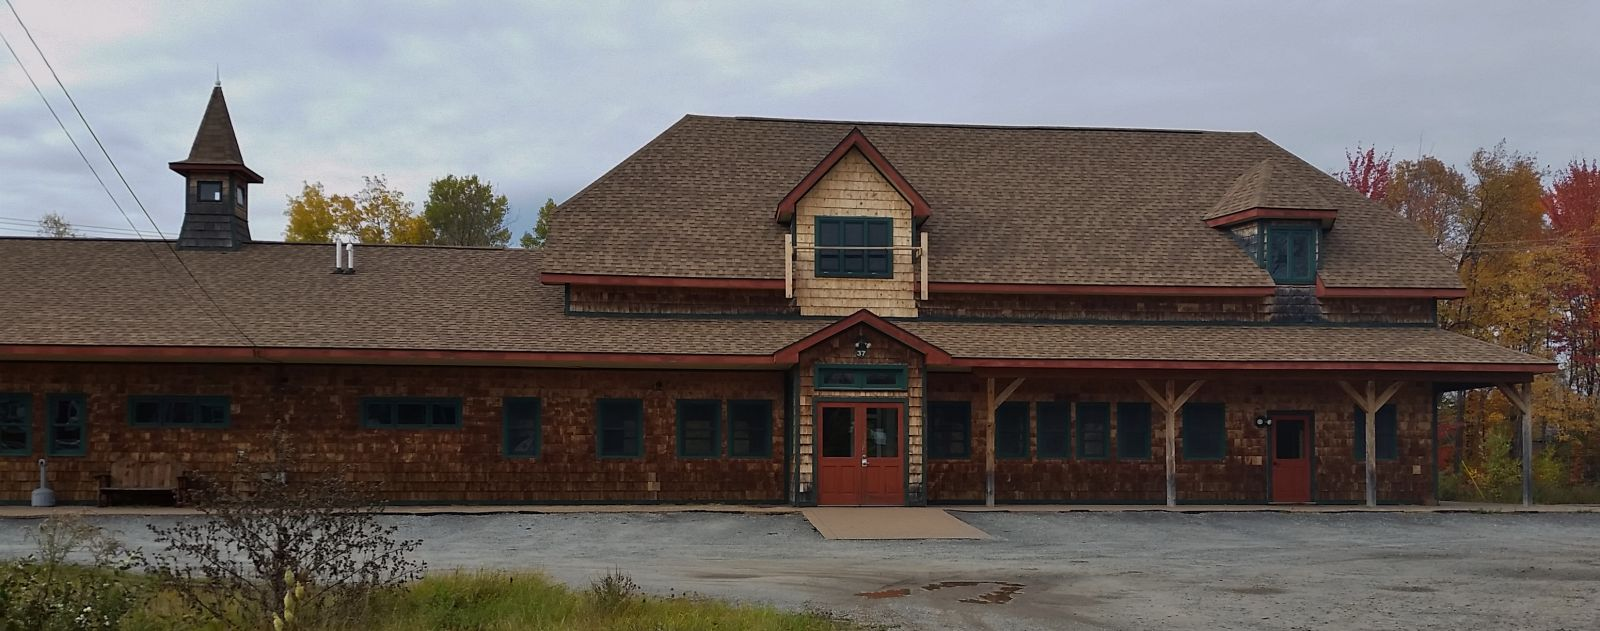 Tupper Lake Train Station - used for events!